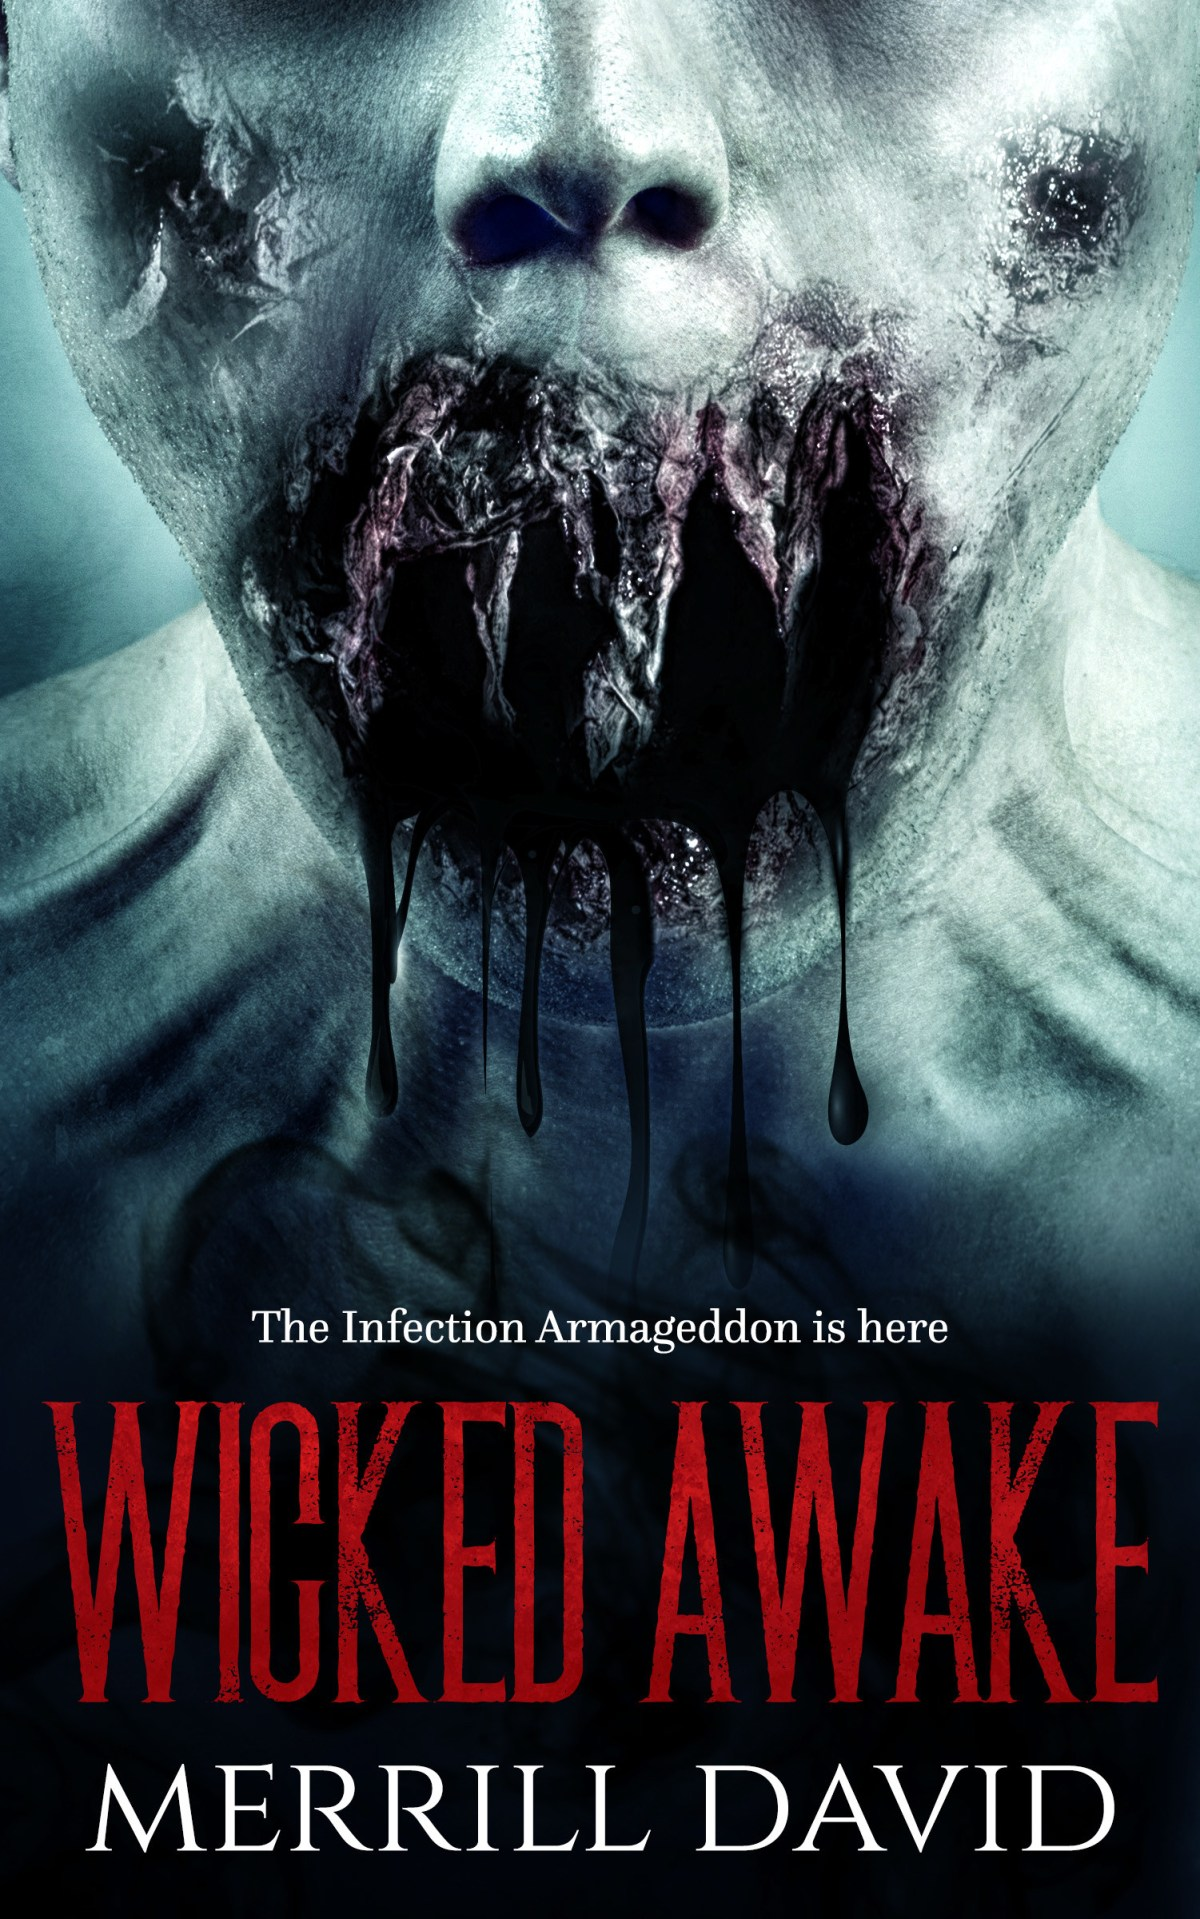 Wicked Awake book Cover by Merril David